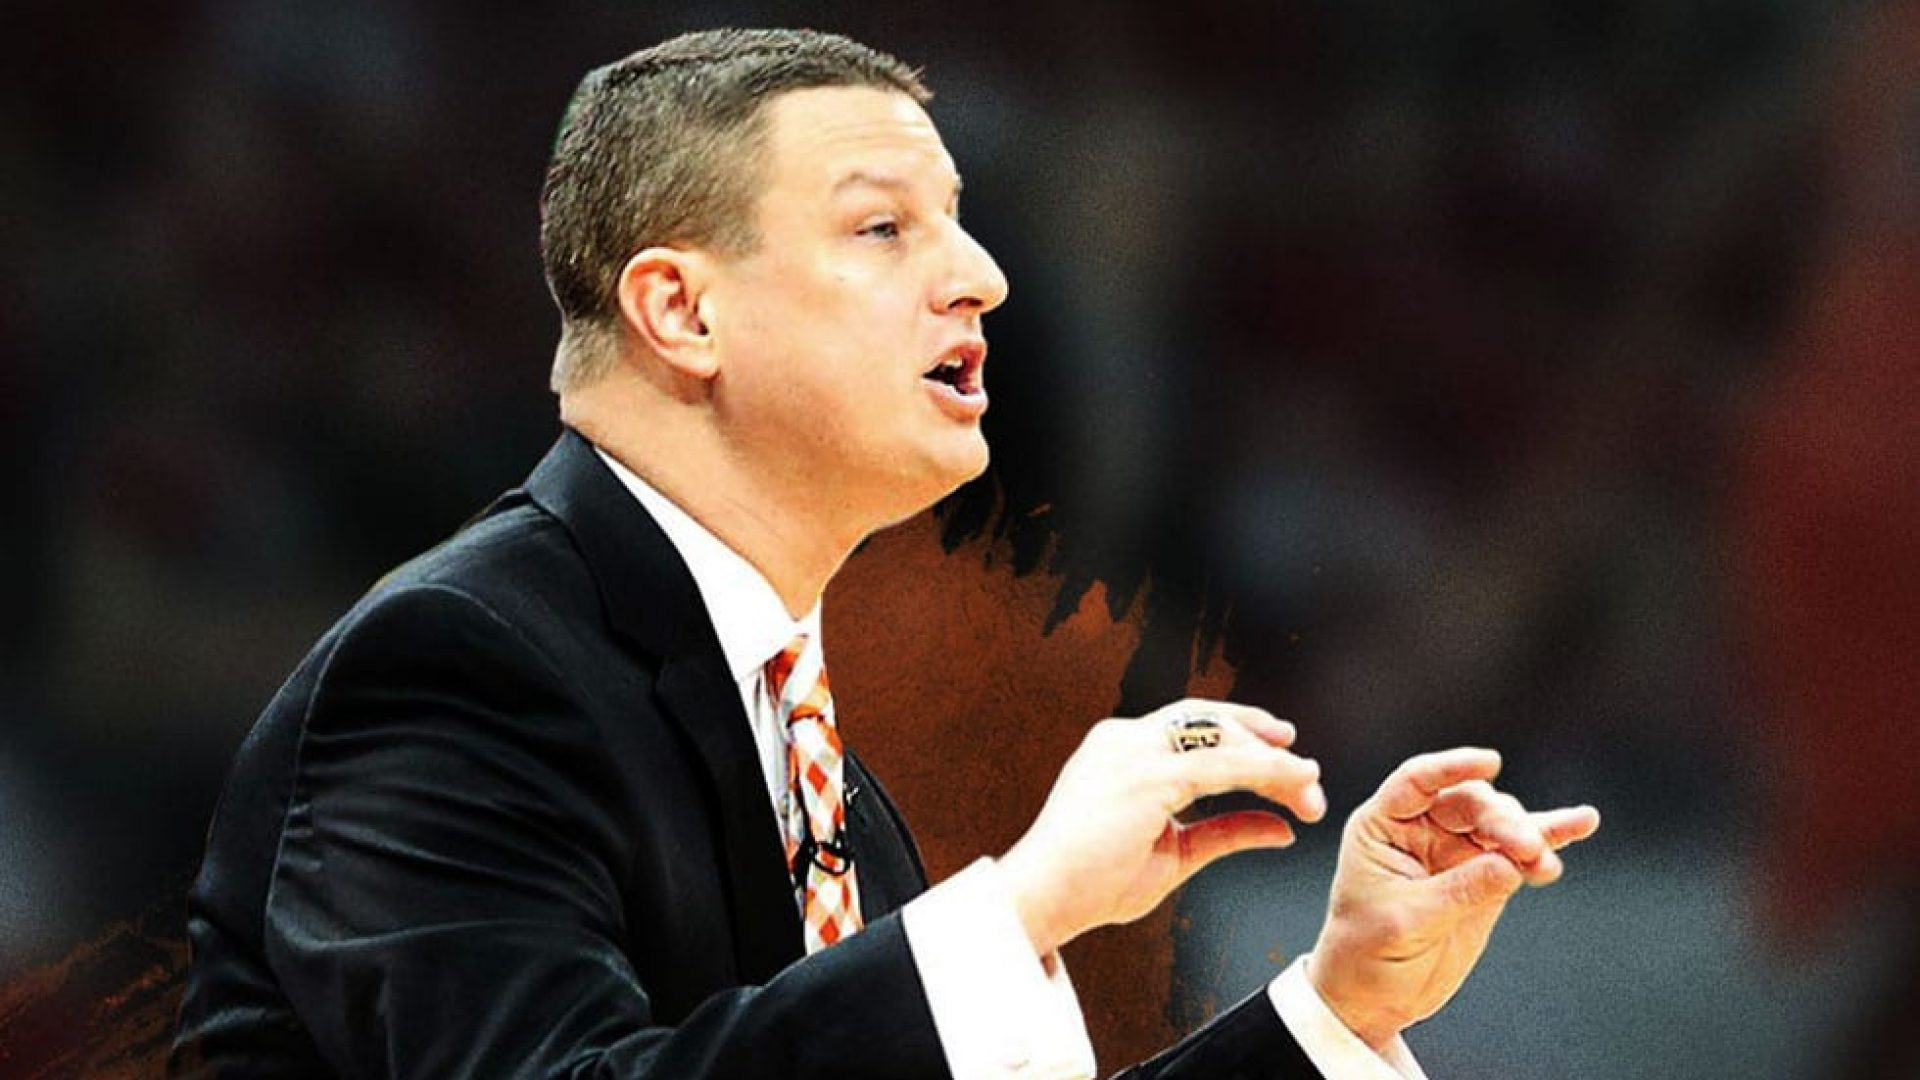 BREAKING NEWS: UPIKE to announce Compton as new head basketball coach